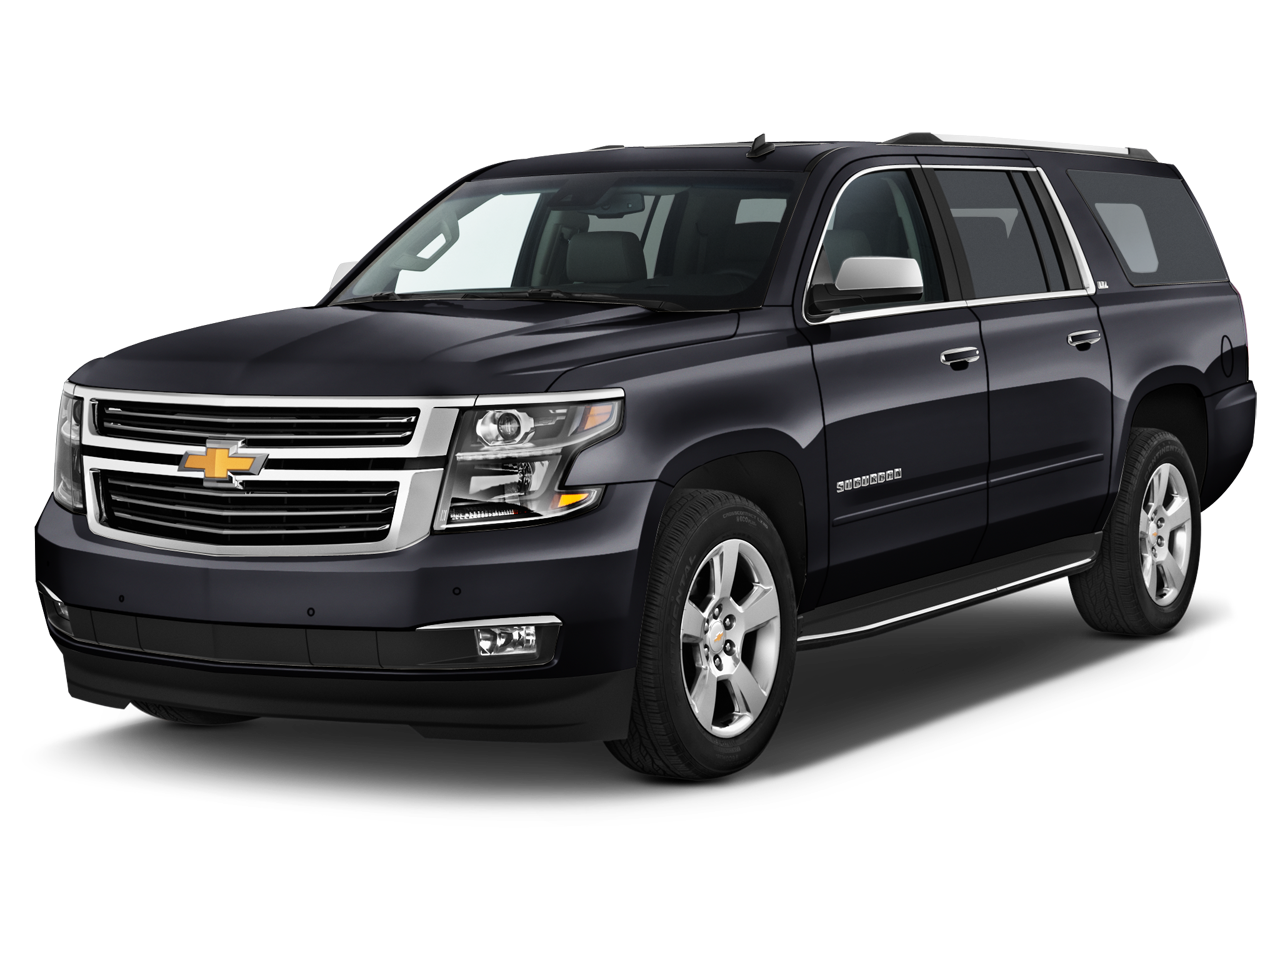 new 2017 chevrolet suburban premier near framingham ma herb connolly auto group. Black Bedroom Furniture Sets. Home Design Ideas